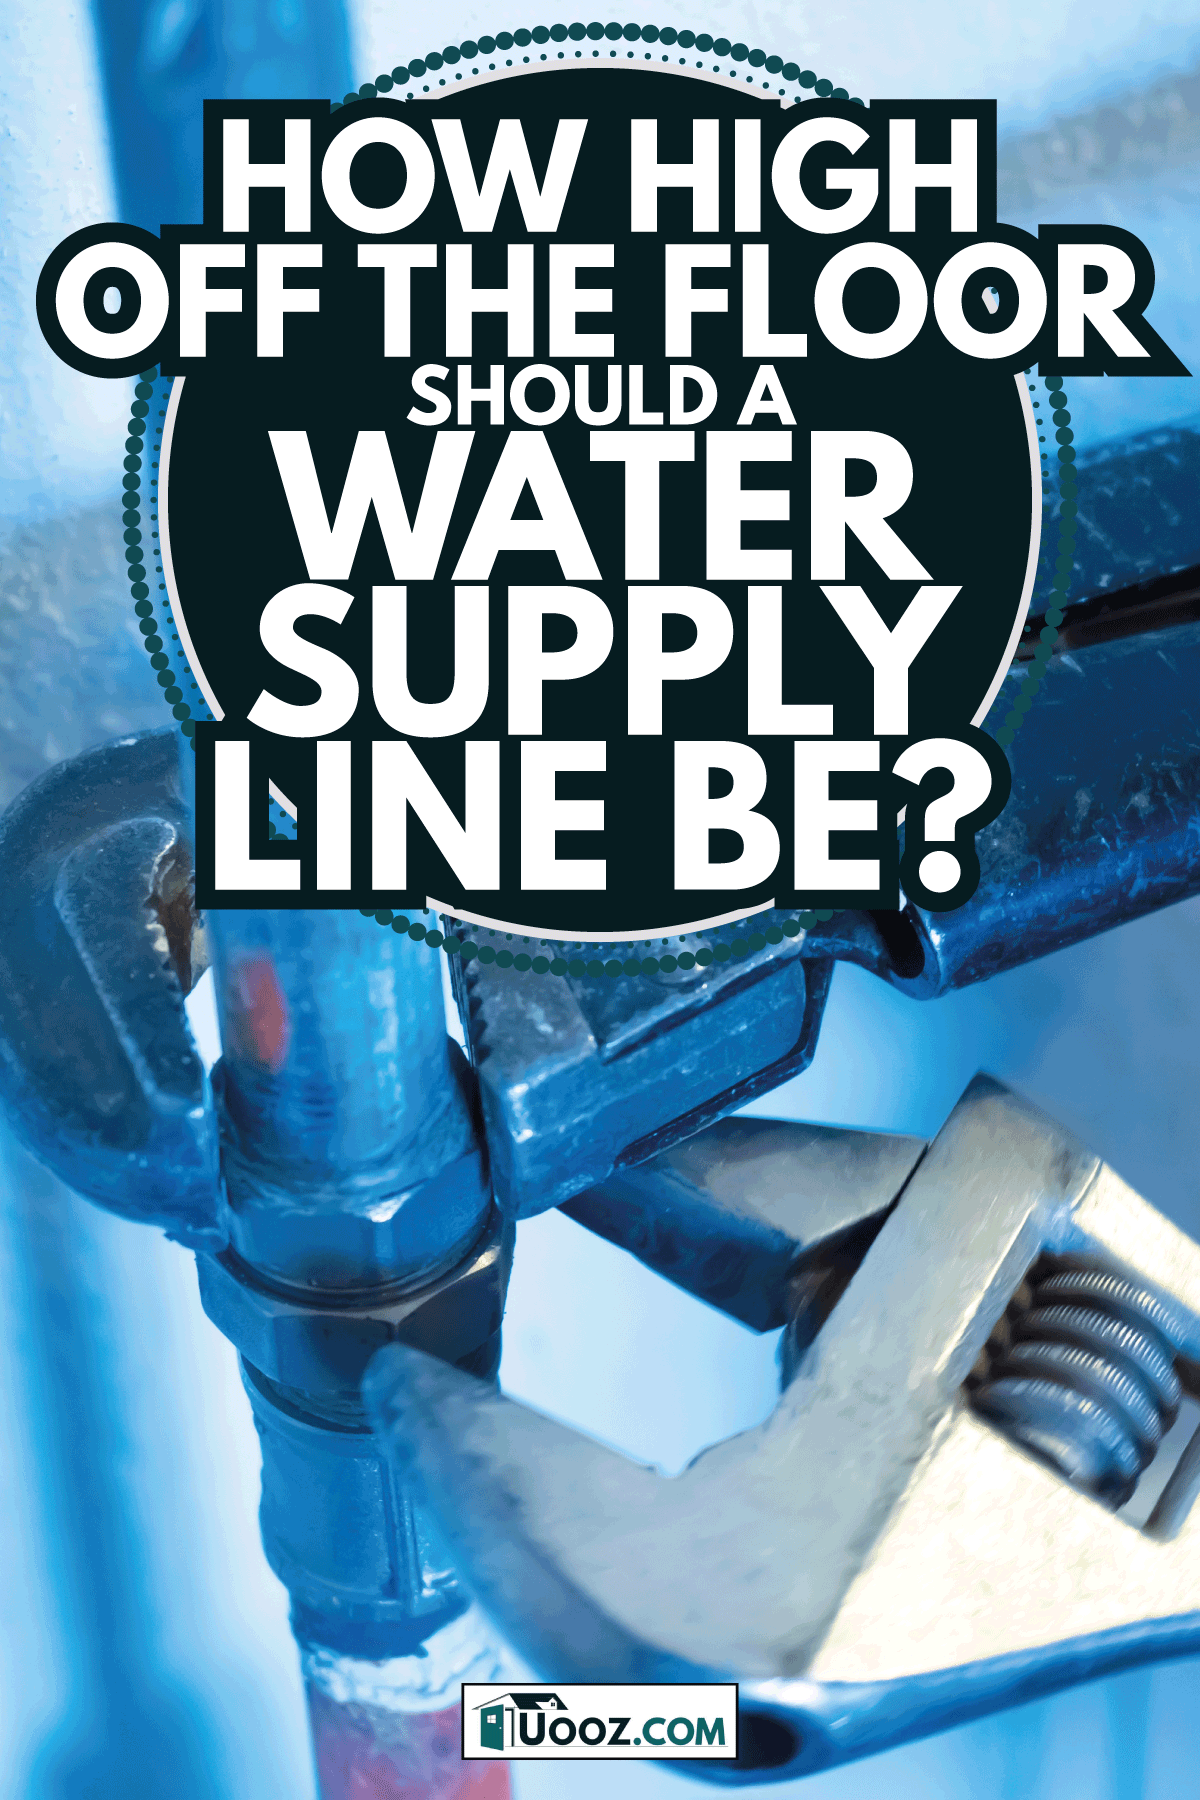 Repair of water supply. Replacement of water pipes. Plumbing work. How High Off The Floor Should A Water Supply Line Be